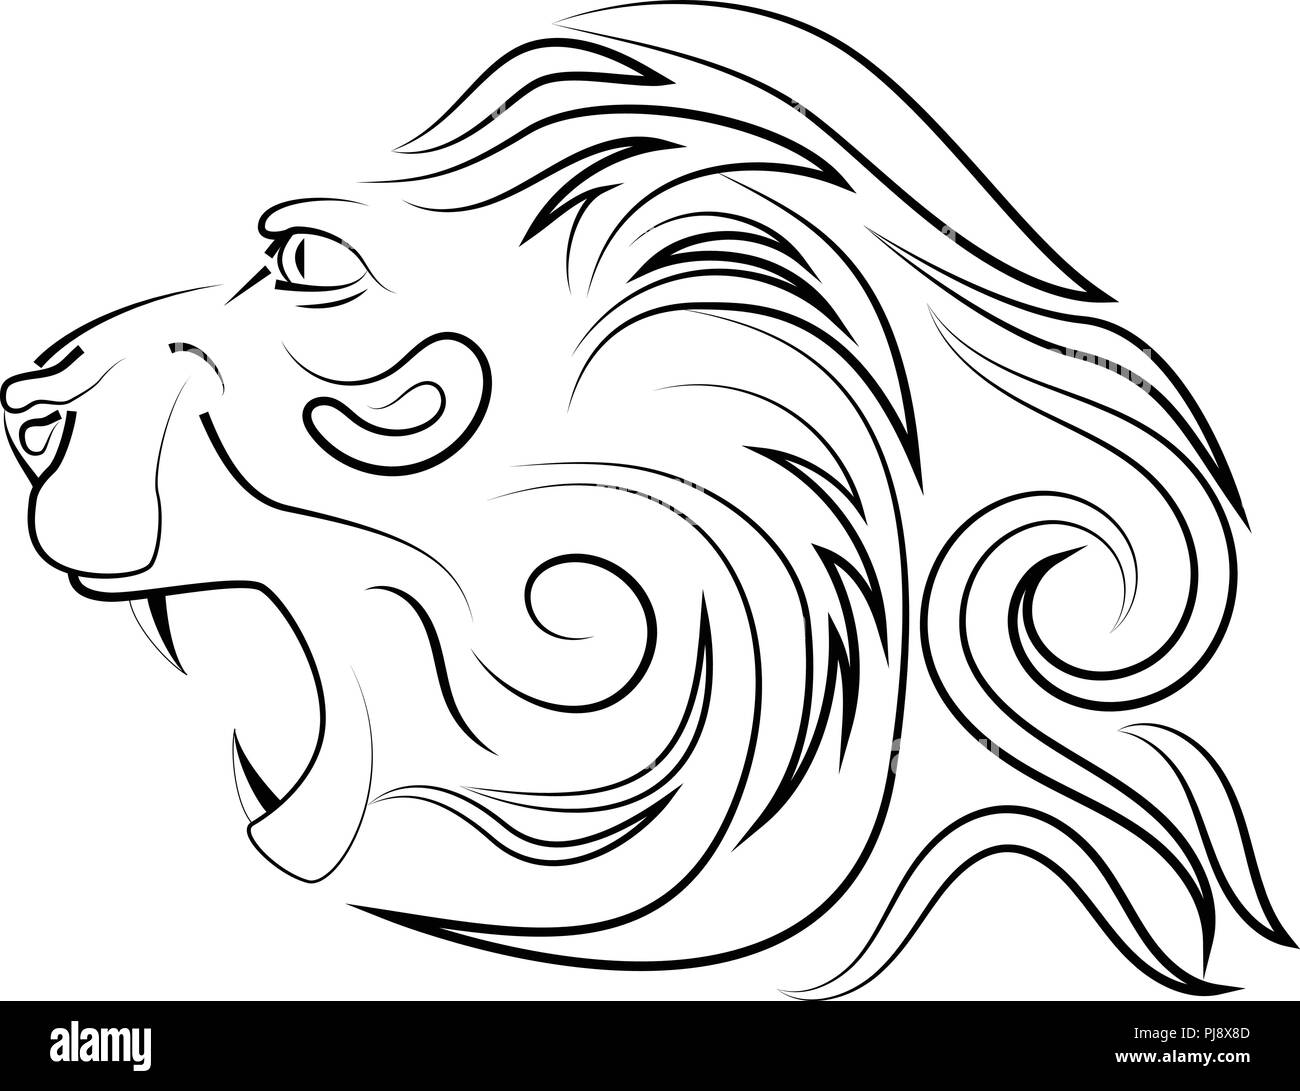 Head of lion with an open mouth with canines. Vector logo. Linear art. Concept of power and power. - Stock Image